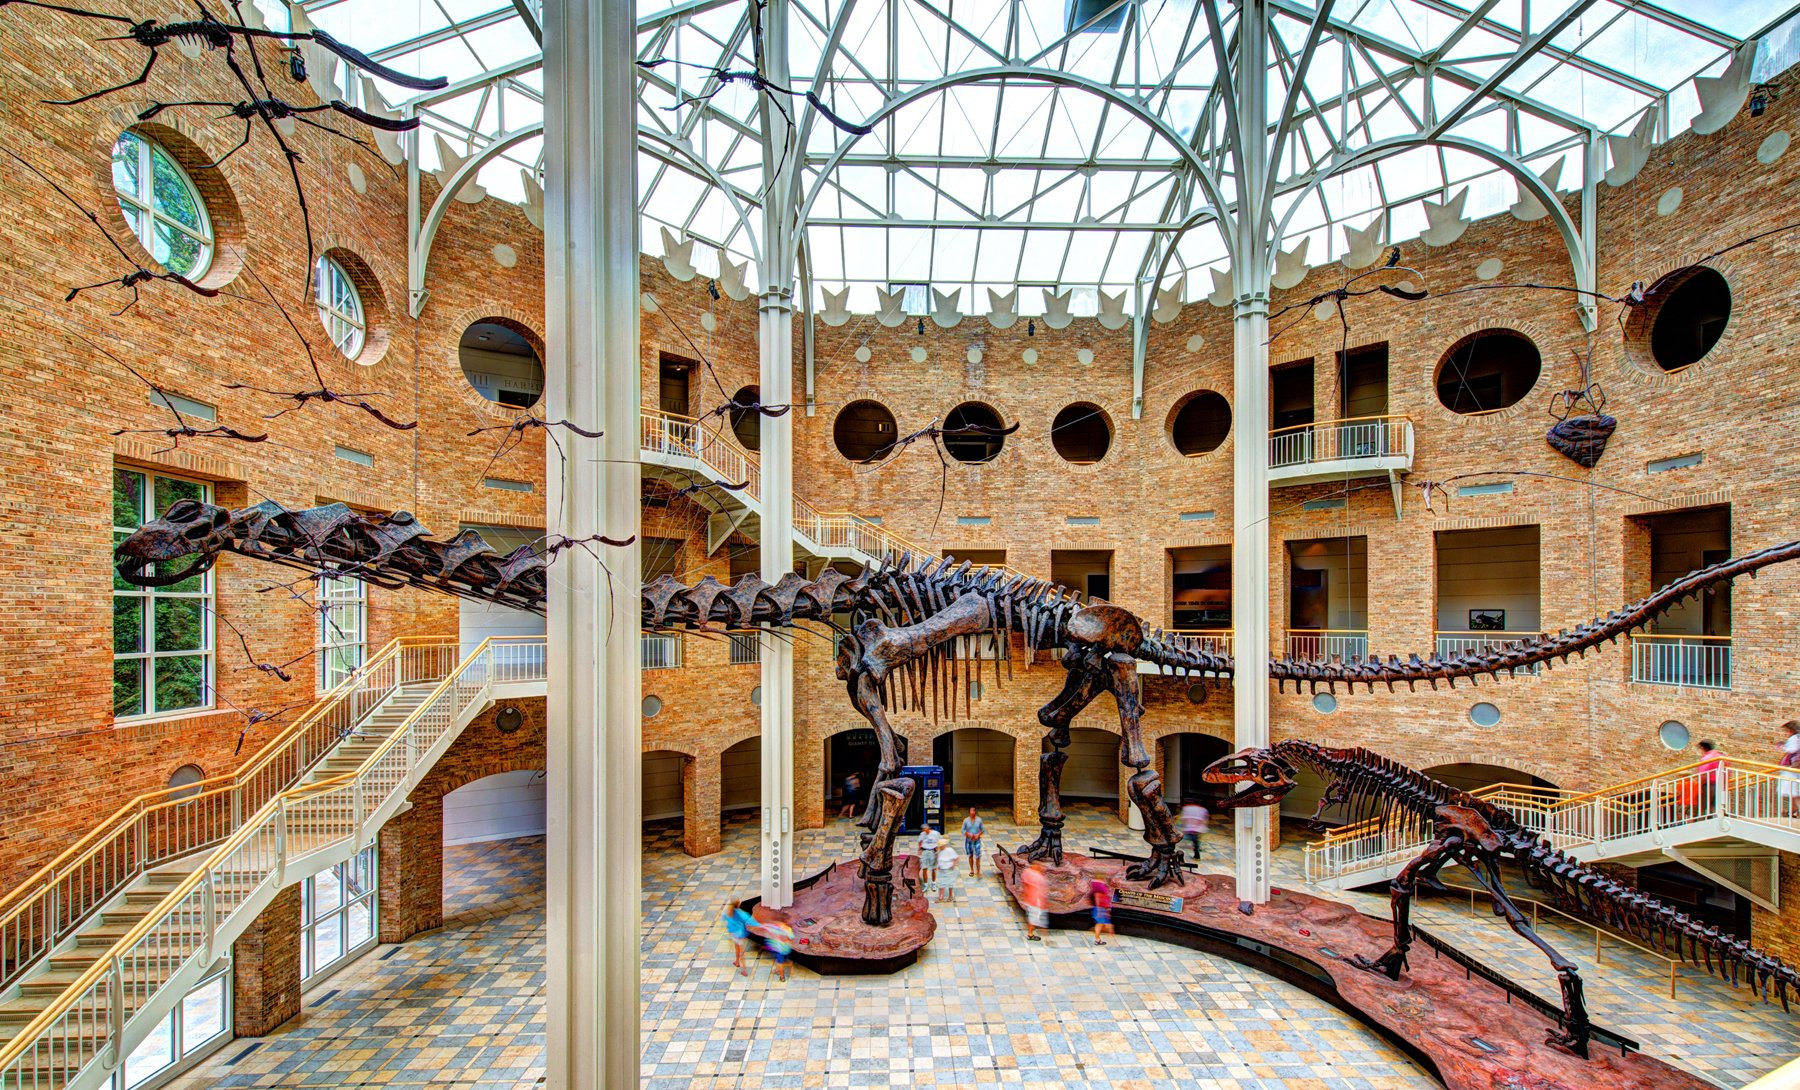 Giganotosaurus and Argentinosaurus Dinosaur sculptures in the main room at the Fernbank Museum of Natural History.